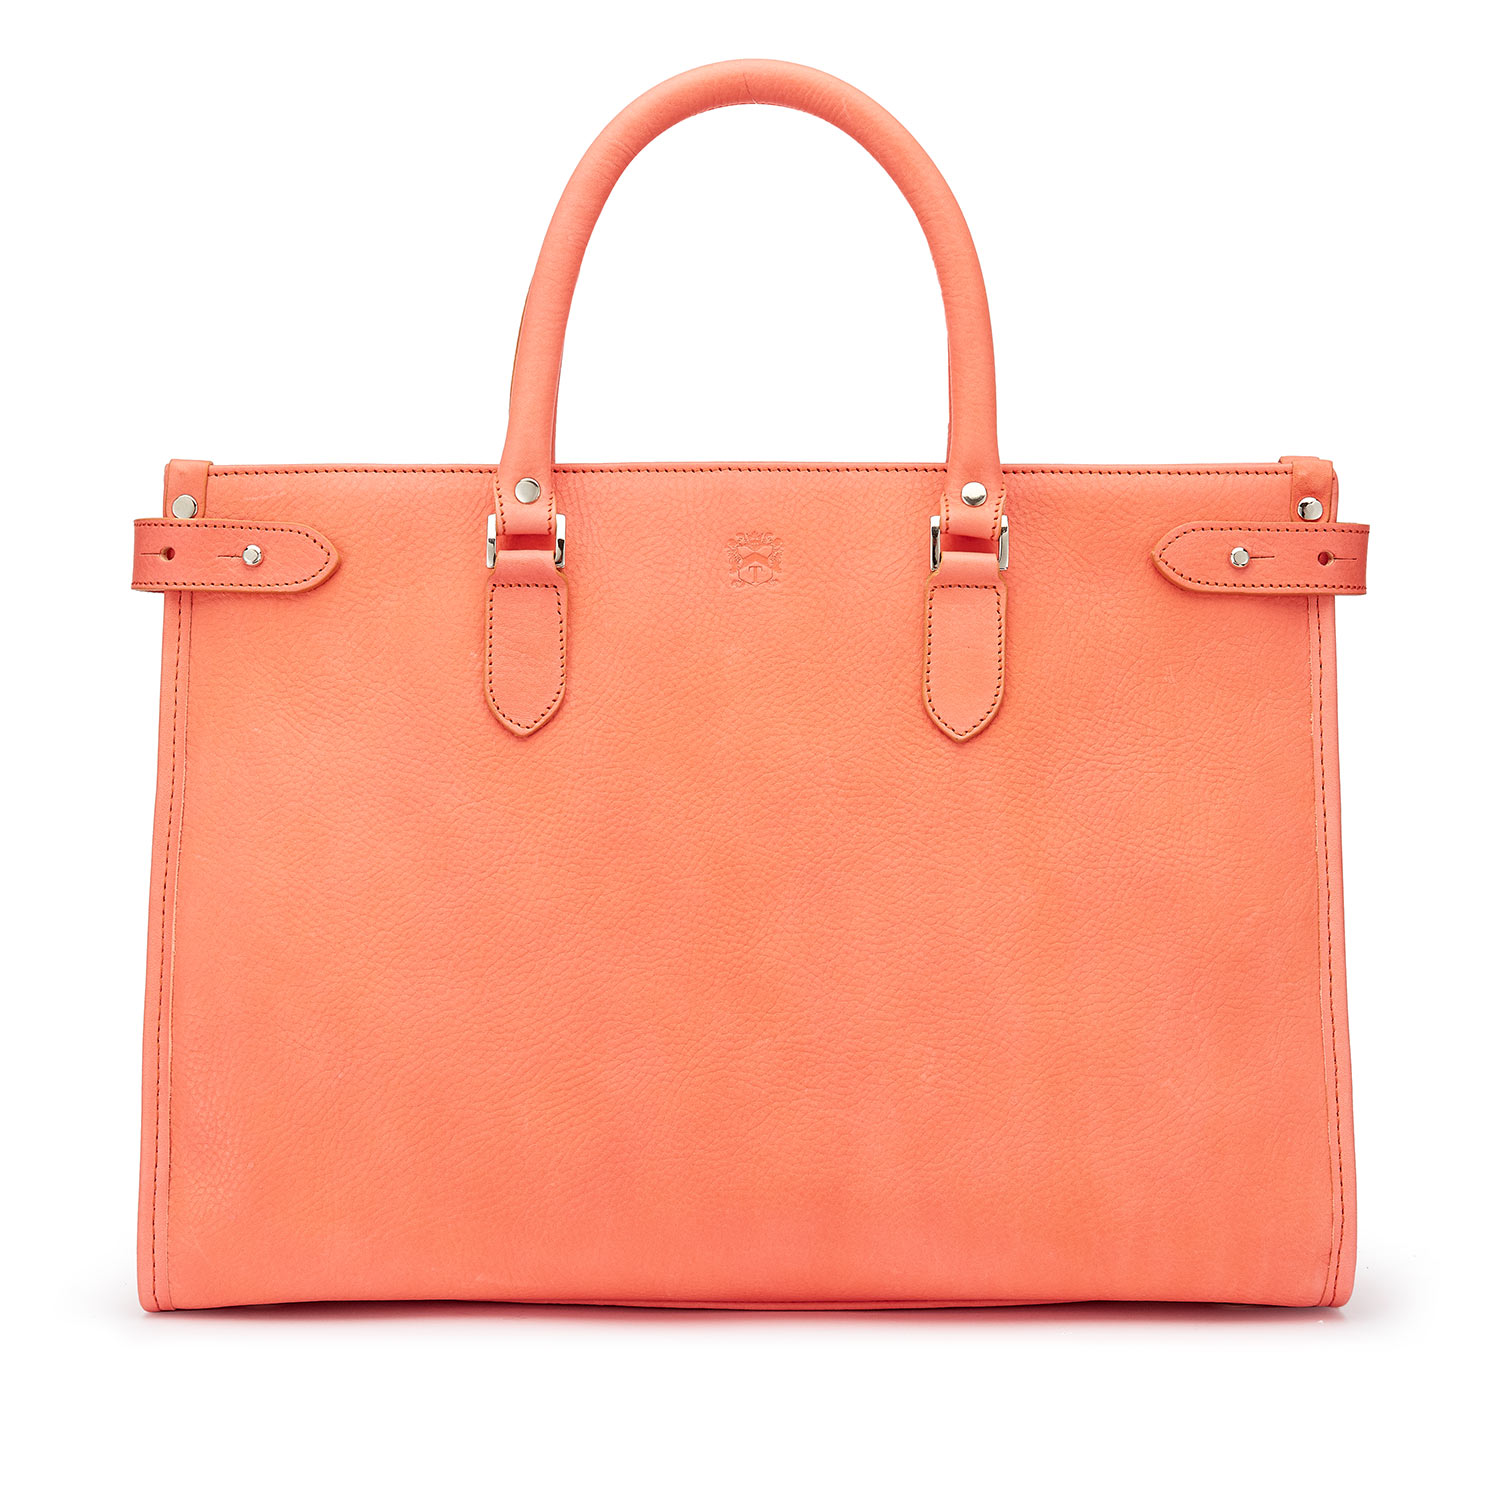 Tusting Large Kimbolton in Coral